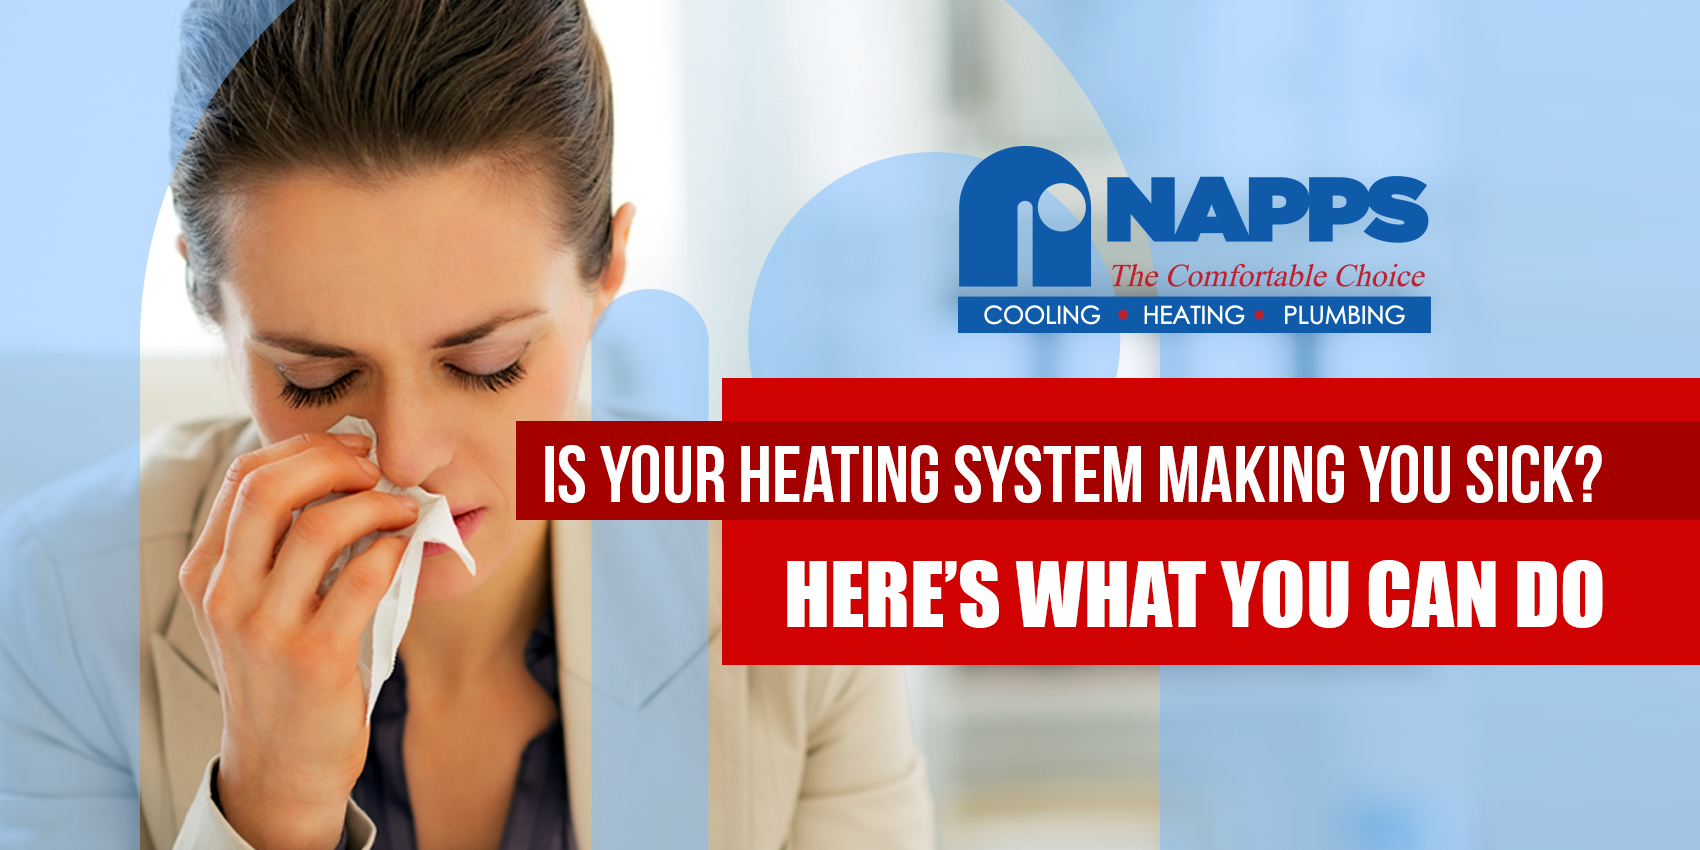 Is Your Heating System Making You Sick? Here's What You Can Do